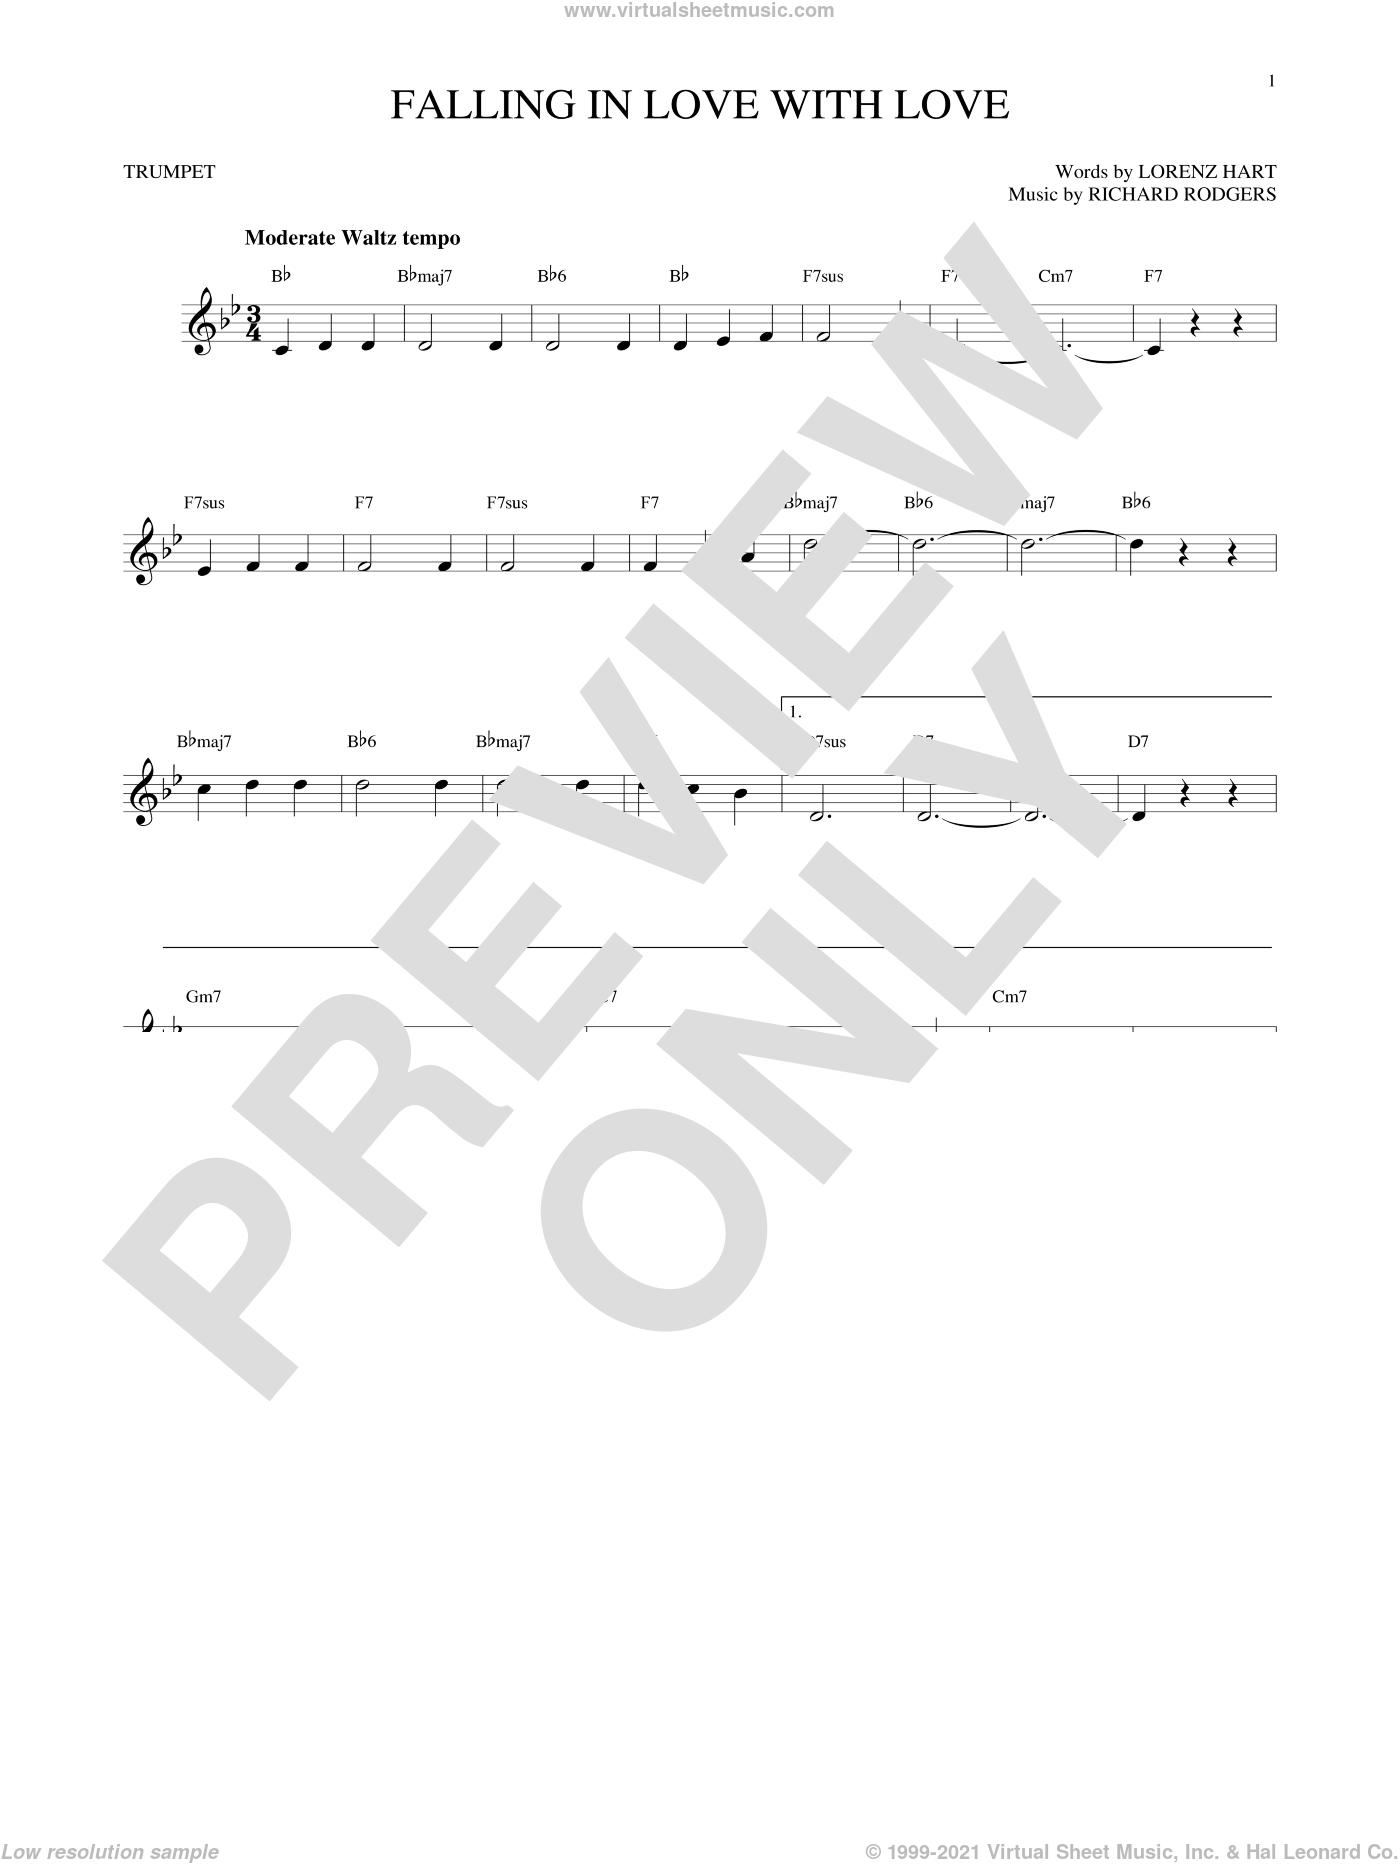 Falling In Love With Love sheet music for trumpet solo by Richard Rodgers, Lorenz Hart and Rodgers & Hart, intermediate skill level